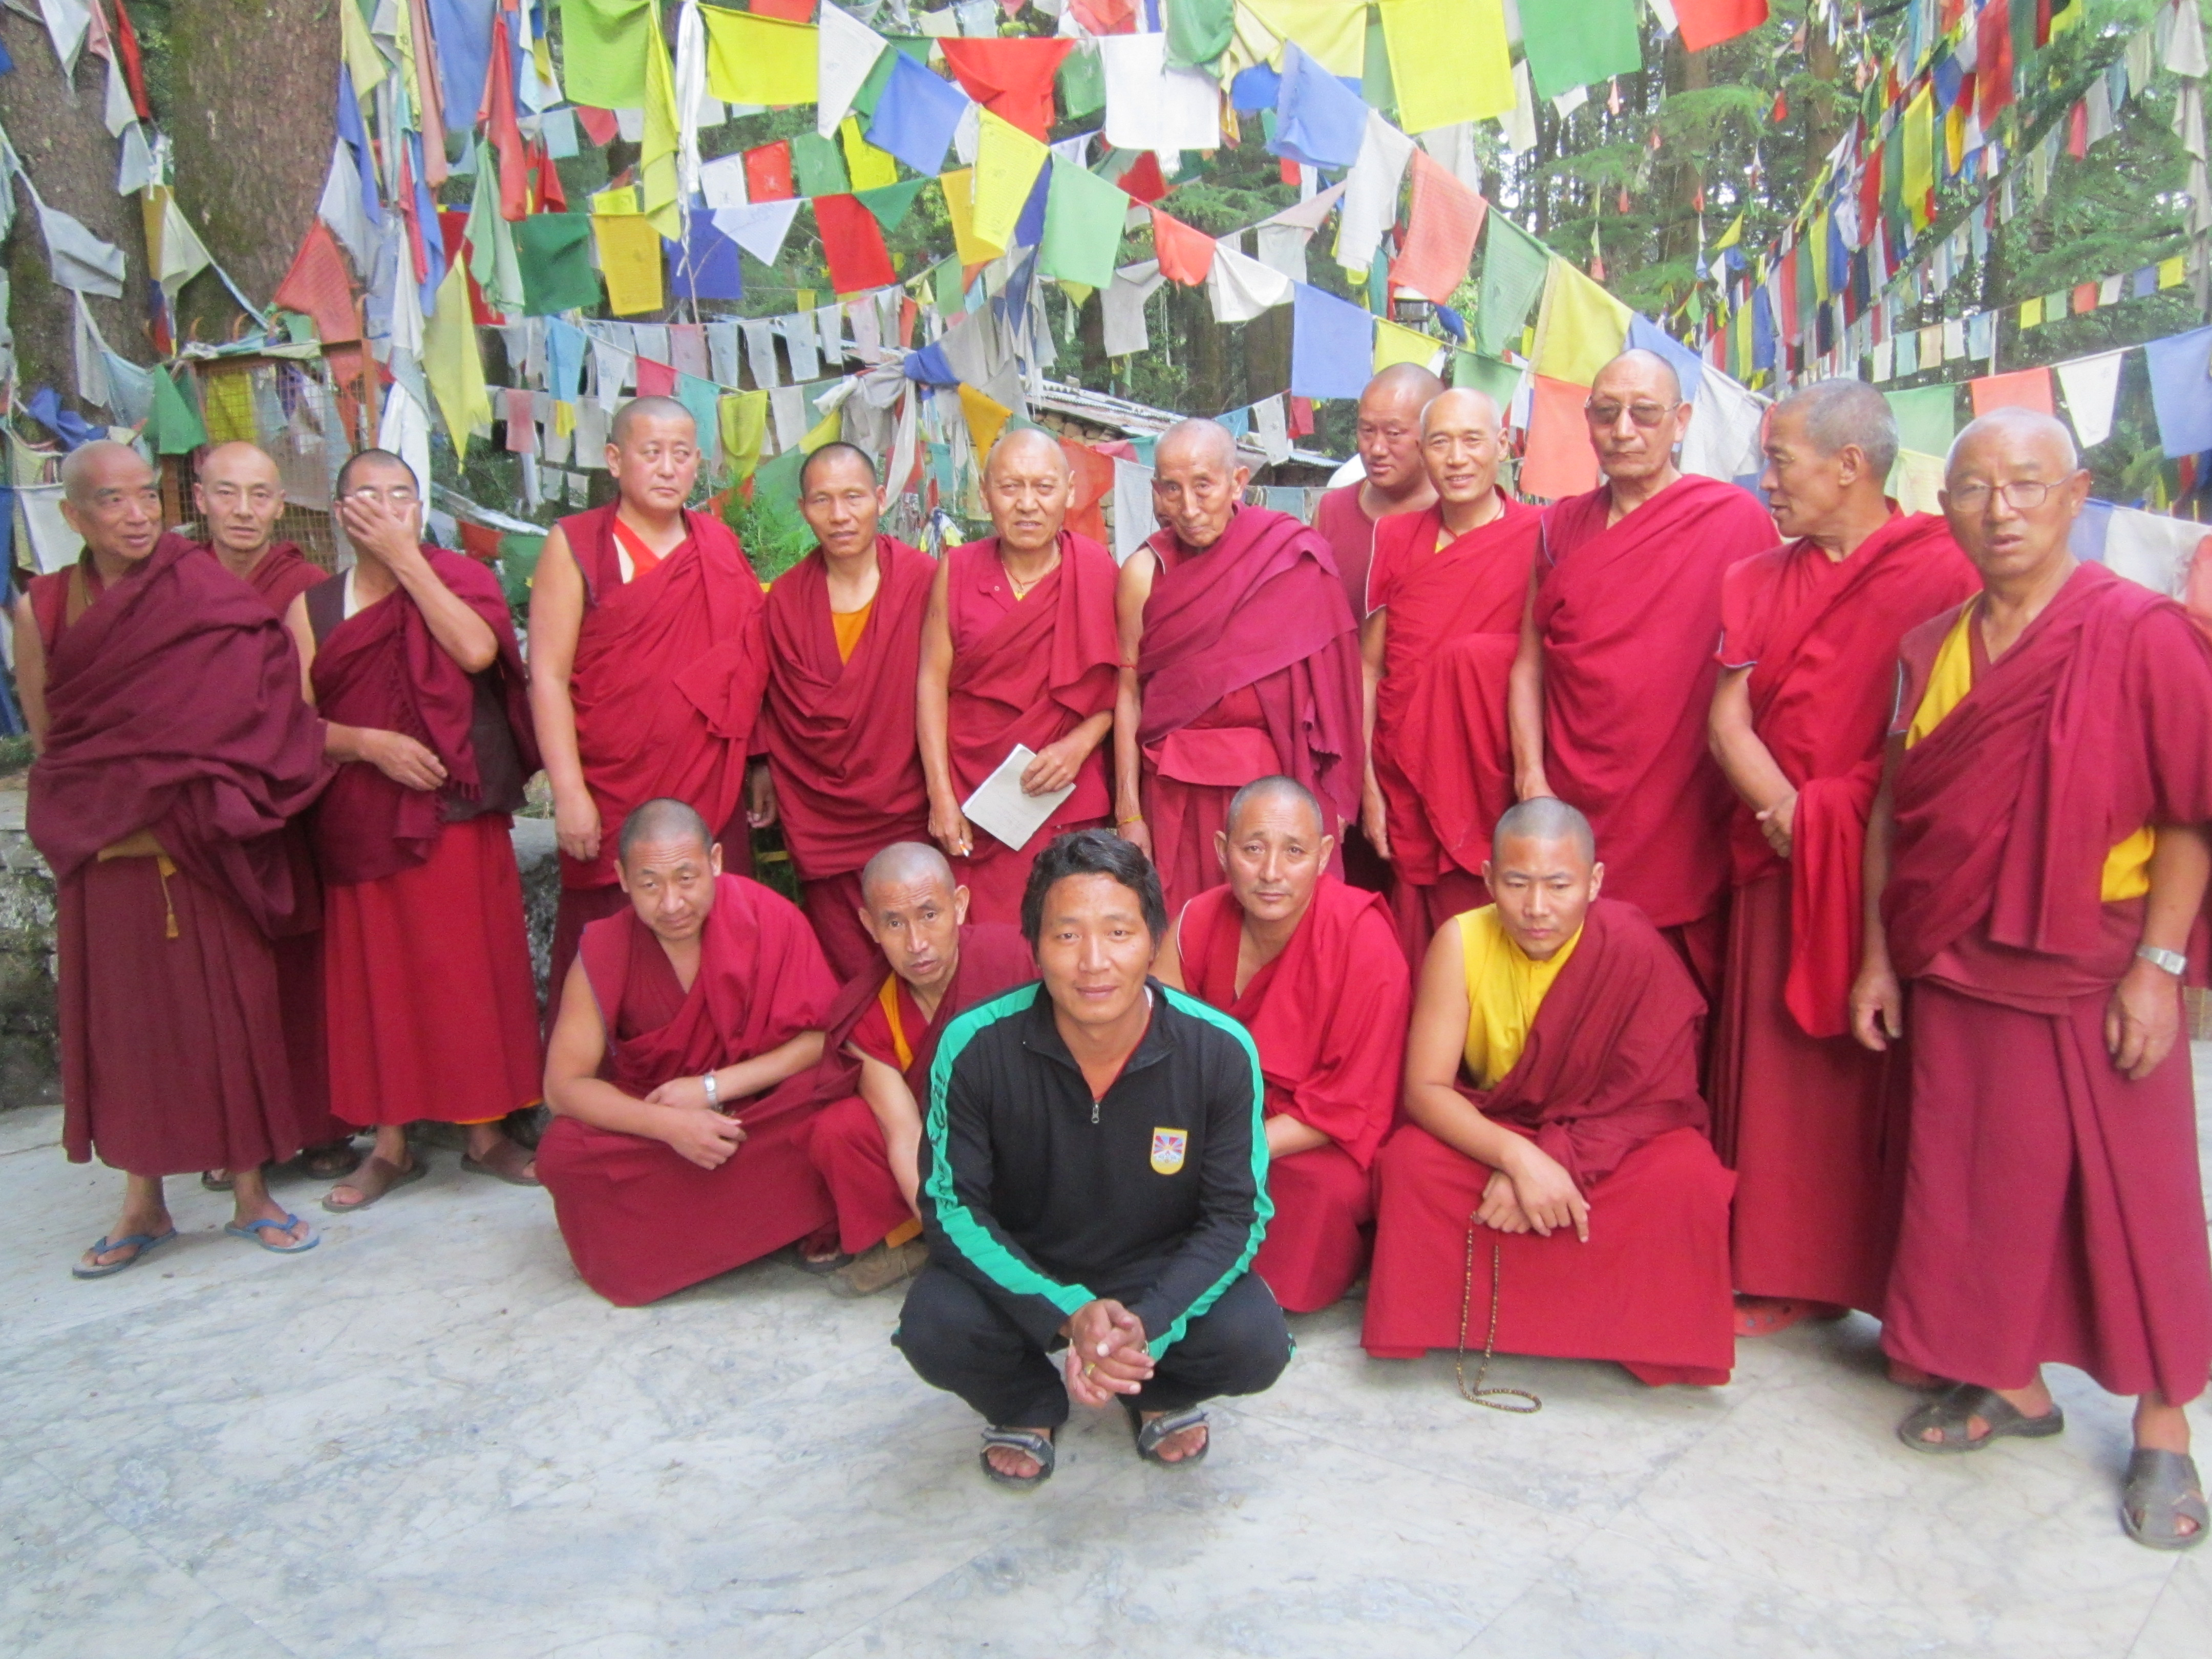 mc leod buddhist personals The best buddhist writing 2013 has 75 ratings and 8 reviews kris said: i have heard very good reports on shambhala's the best buddhist writing series.